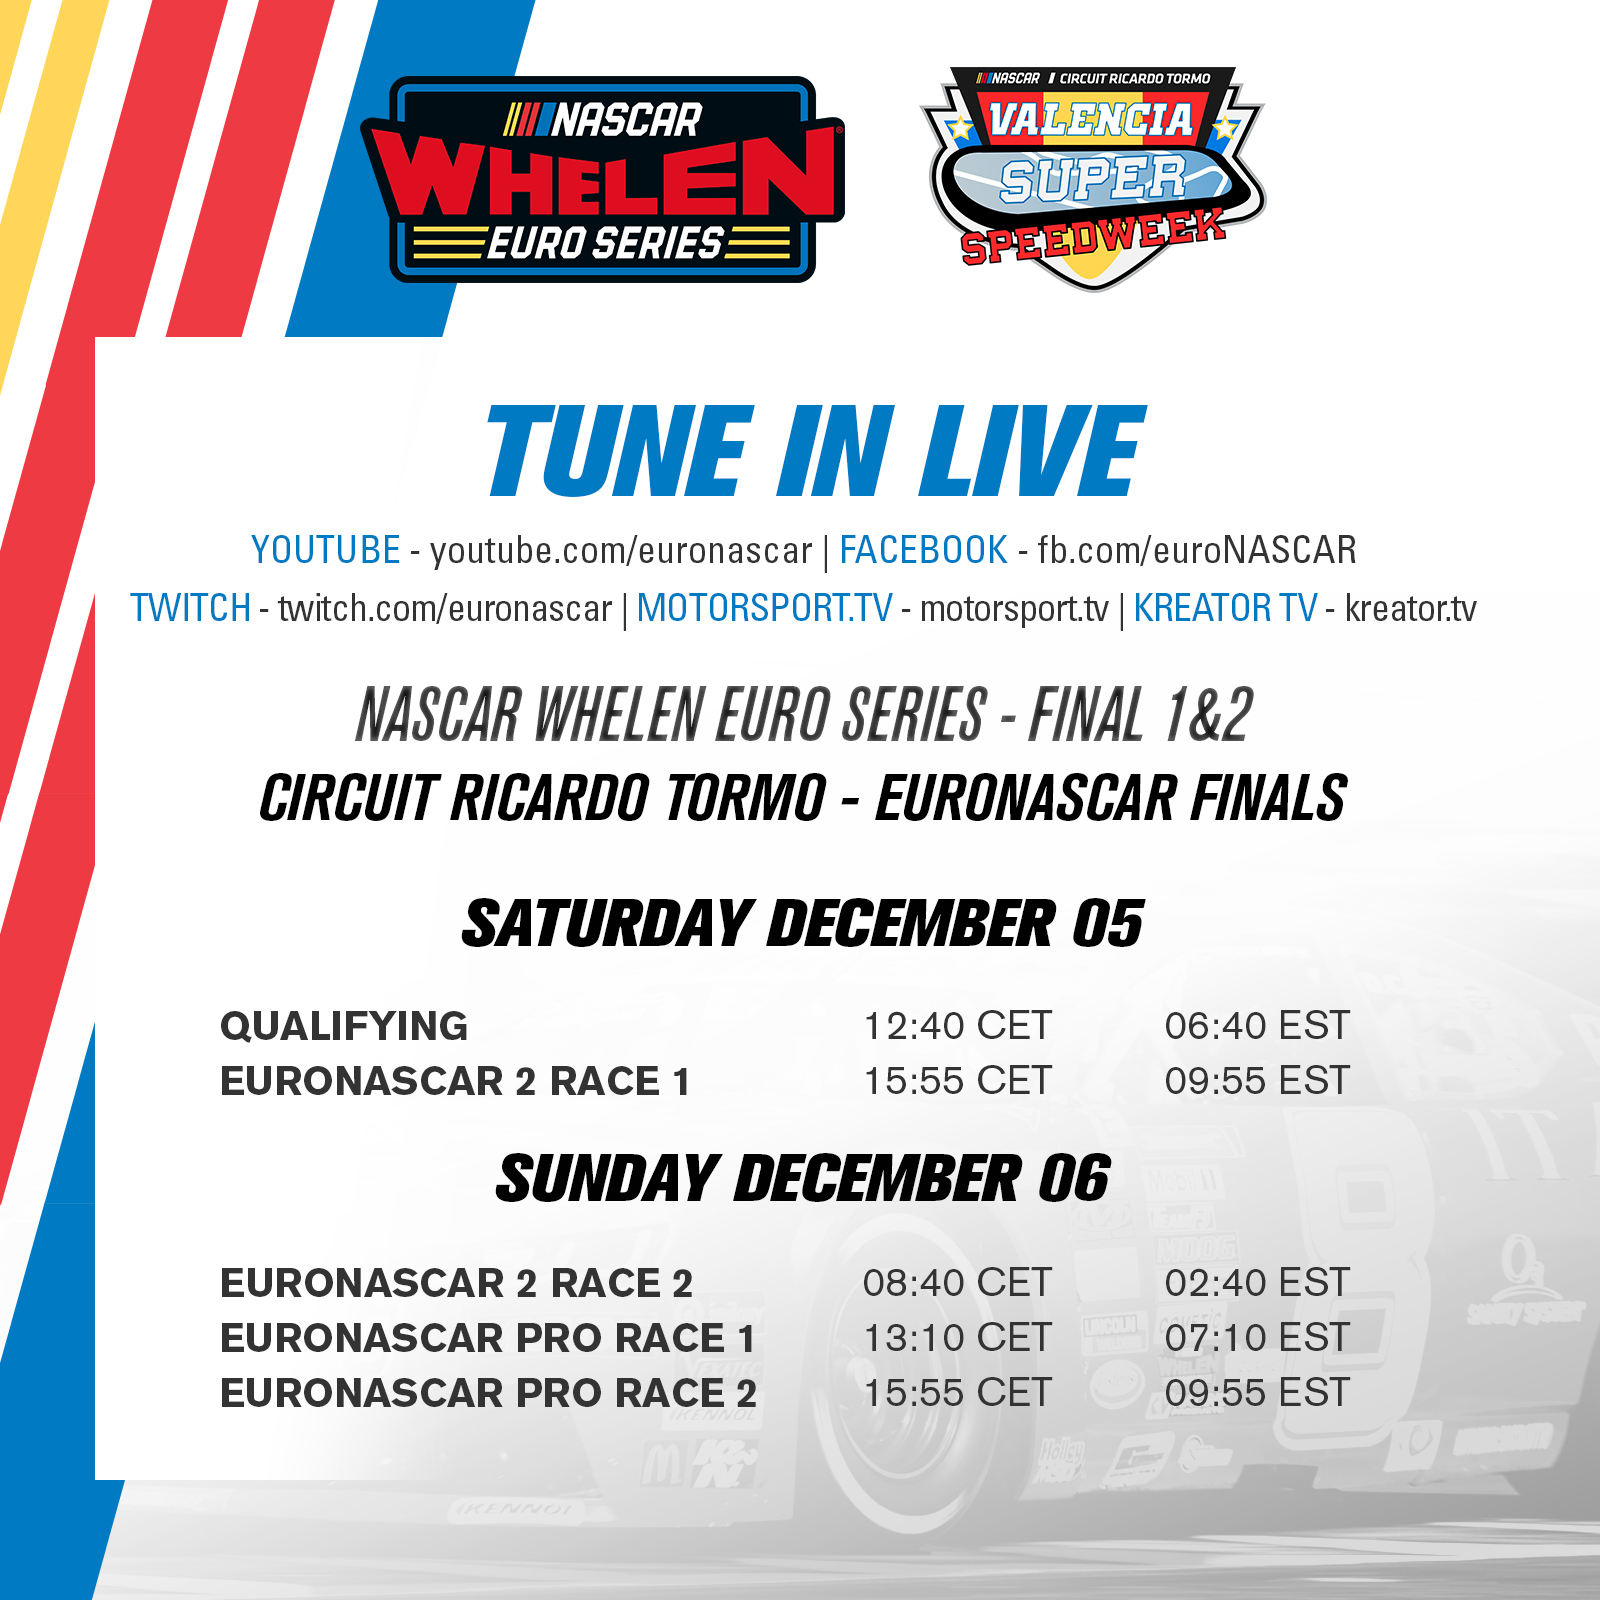 Streaming Schedule Square Euronascar Finals 2020